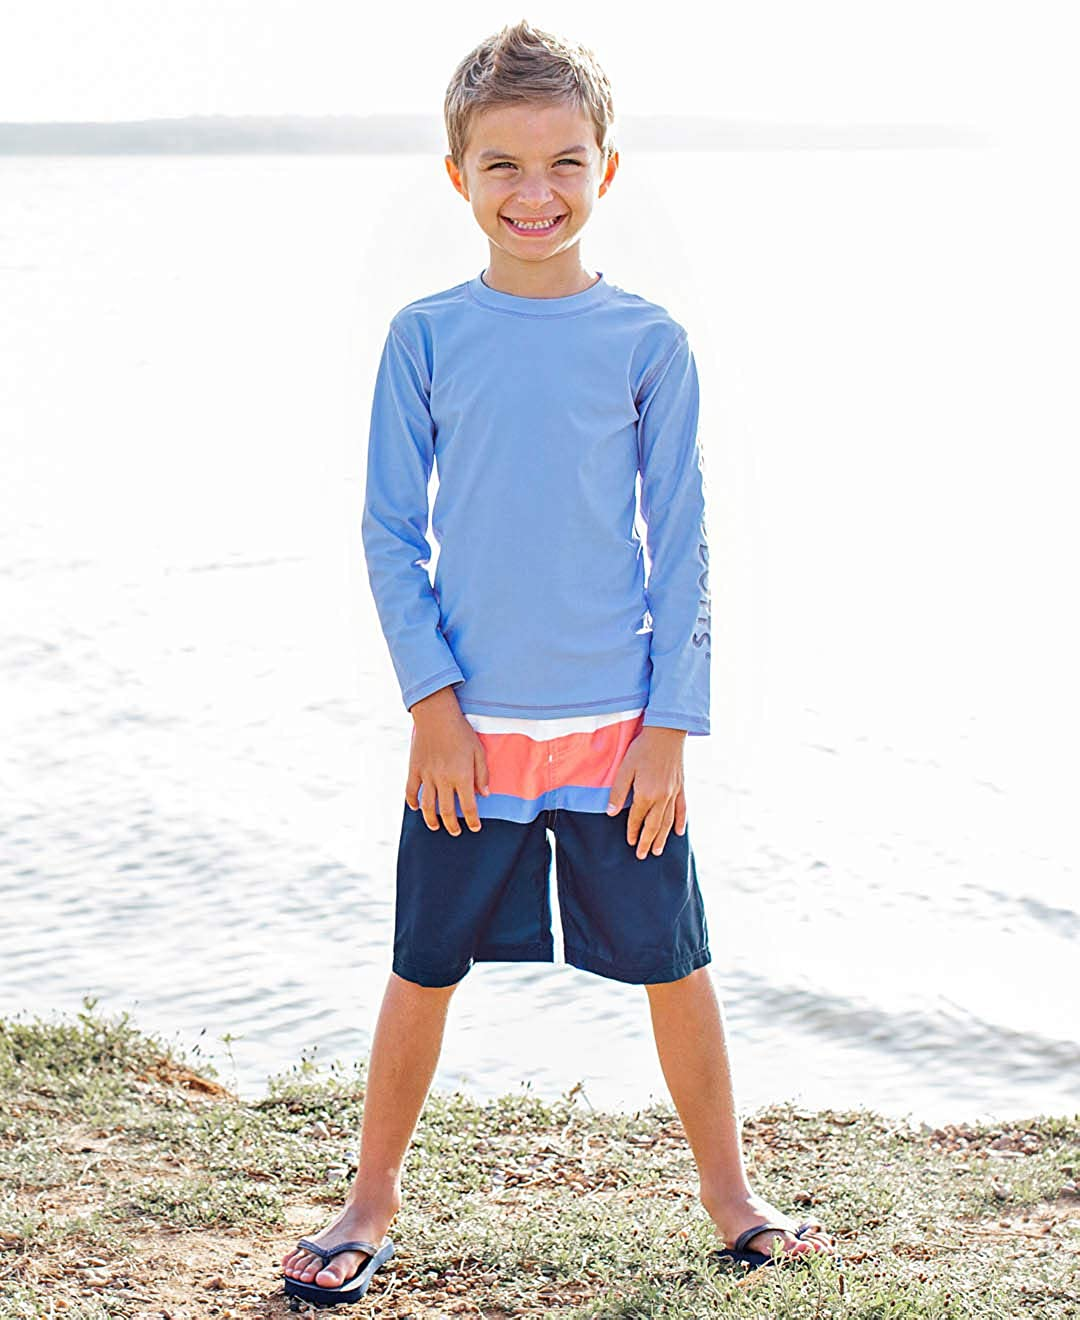 RuggedButts Baby//Toddler Boys Long Sleeve Rash Guard Swim Shirt w//UPF 50+